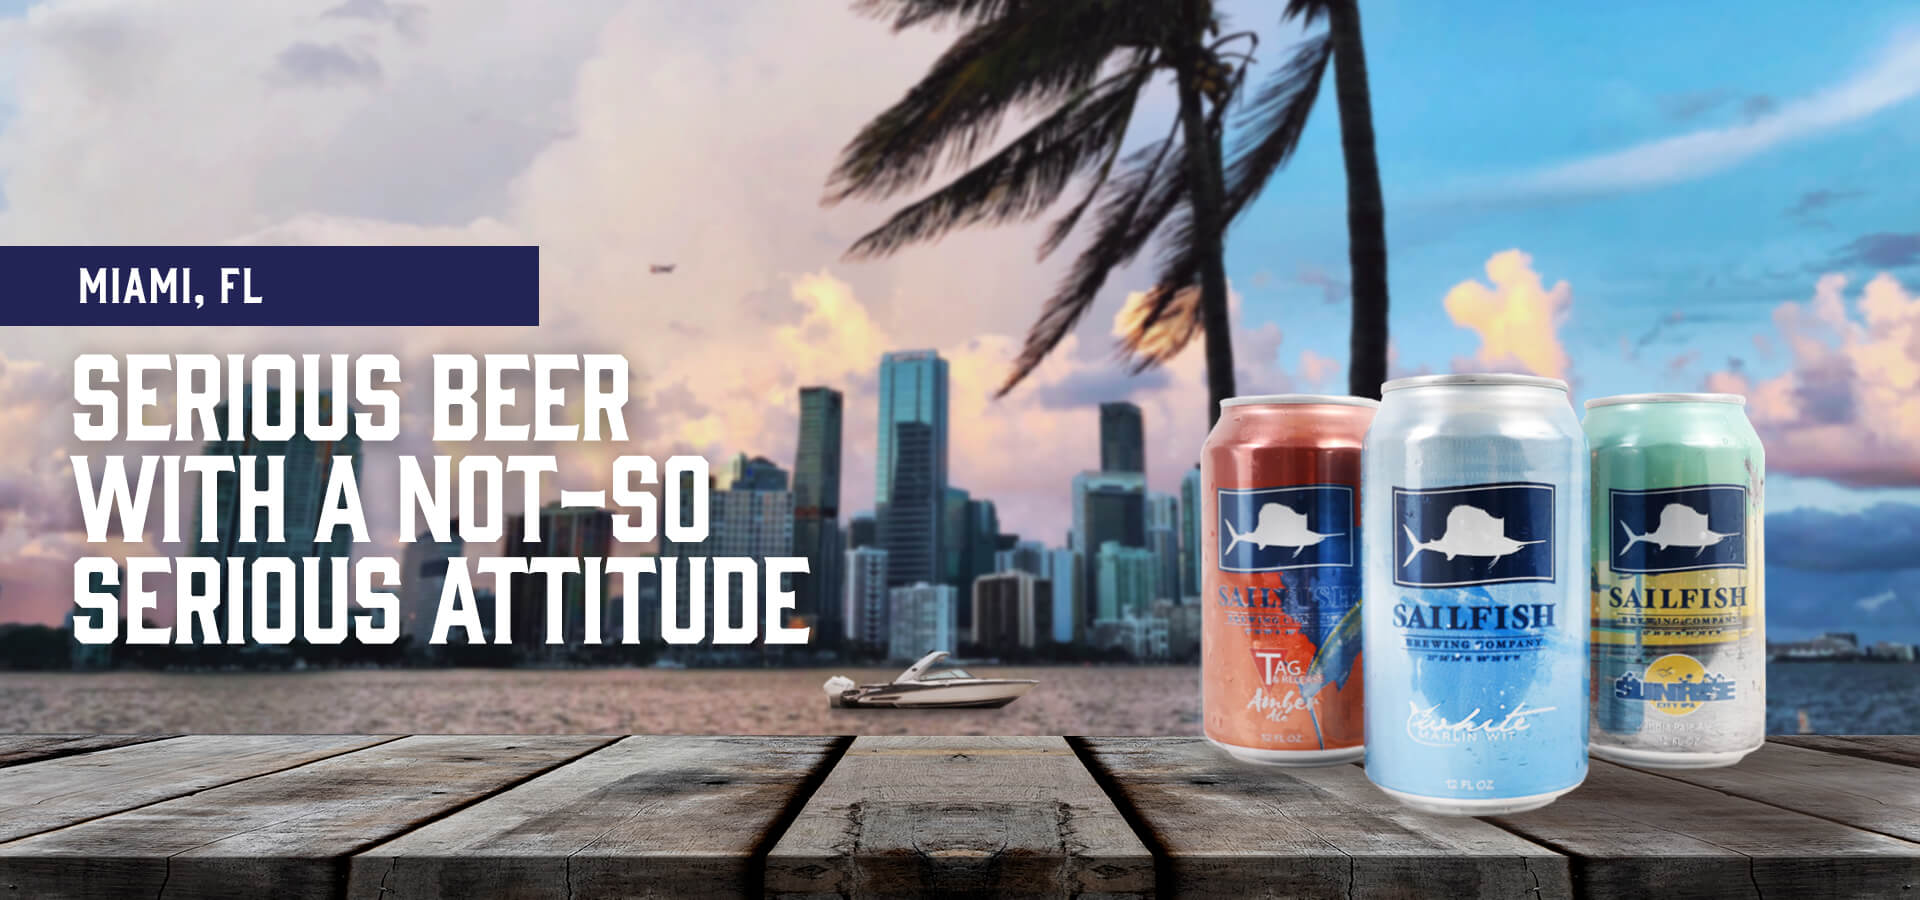 Sailfish Brewery Cans in Miami